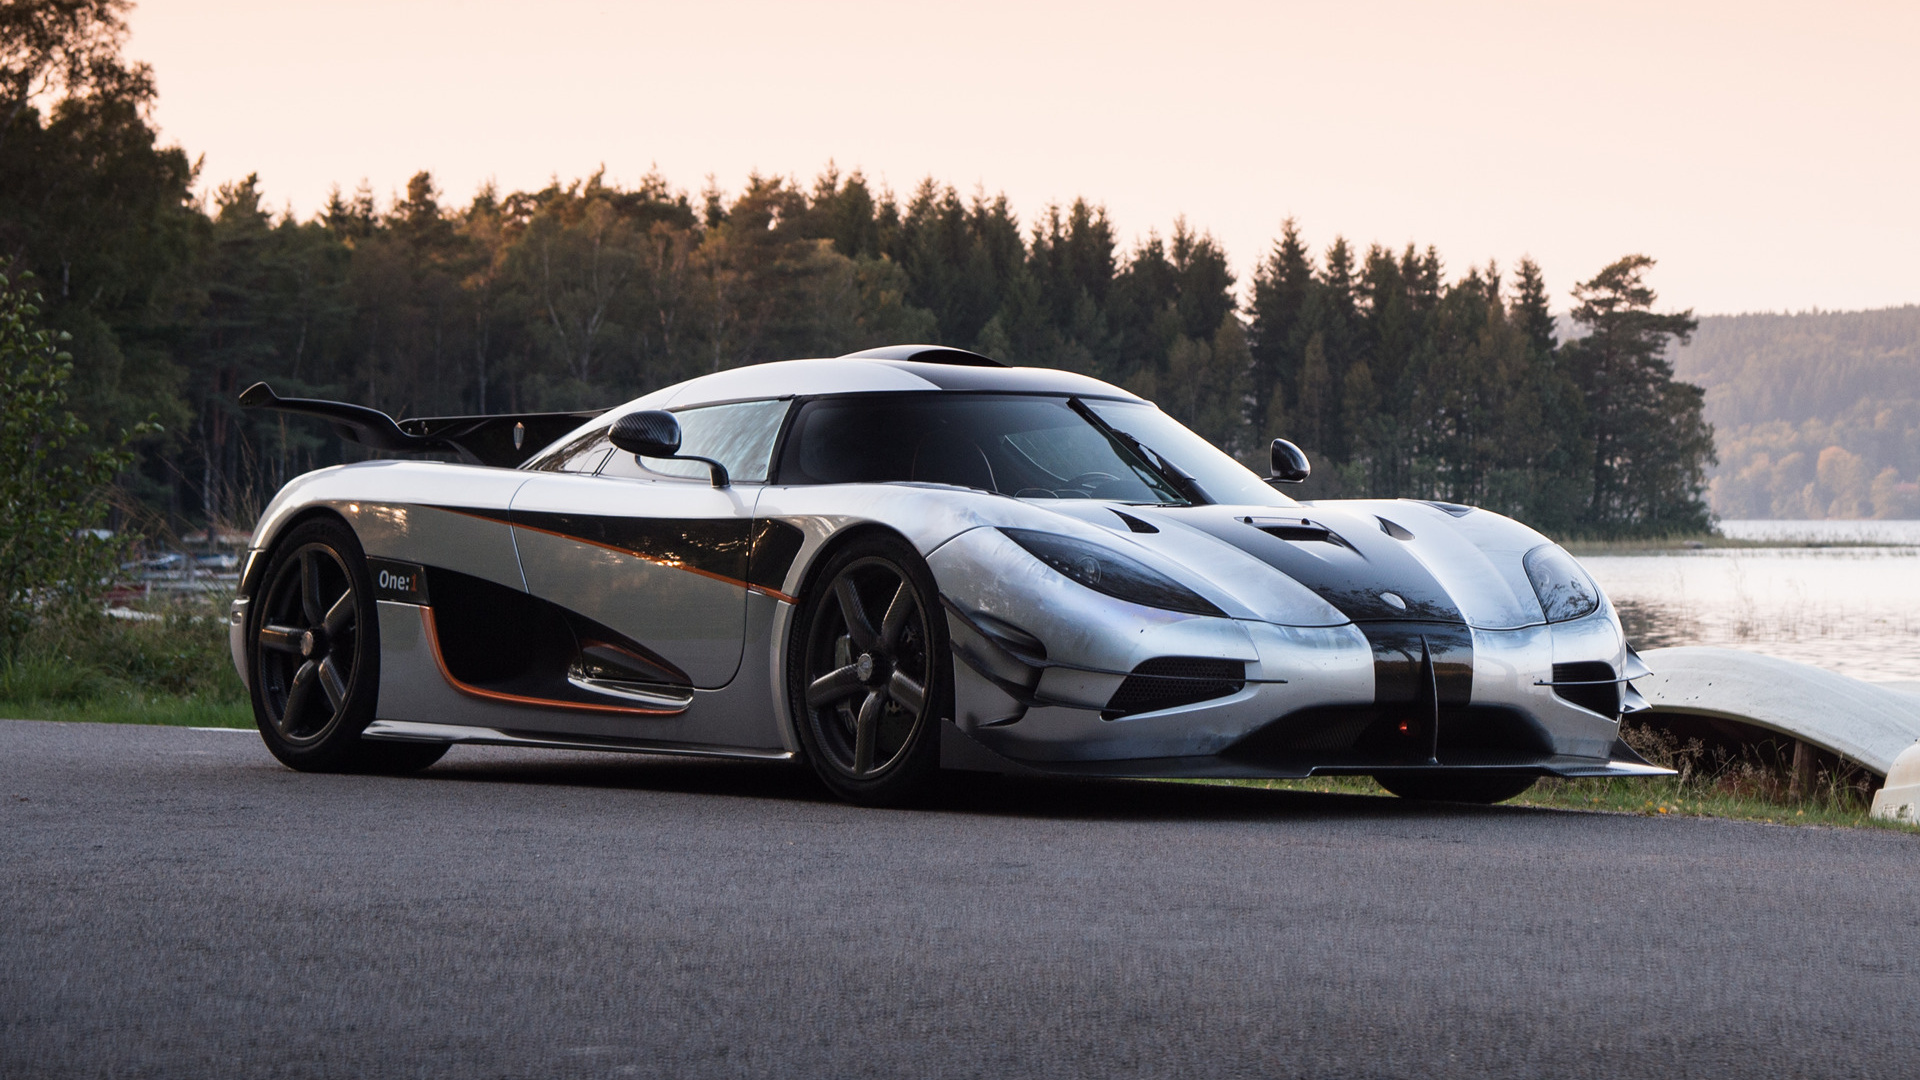 Car Wallpapers 4k Bentely Koenigsegg One 1 2014 Wallpapers And Hd Images Car Pixel